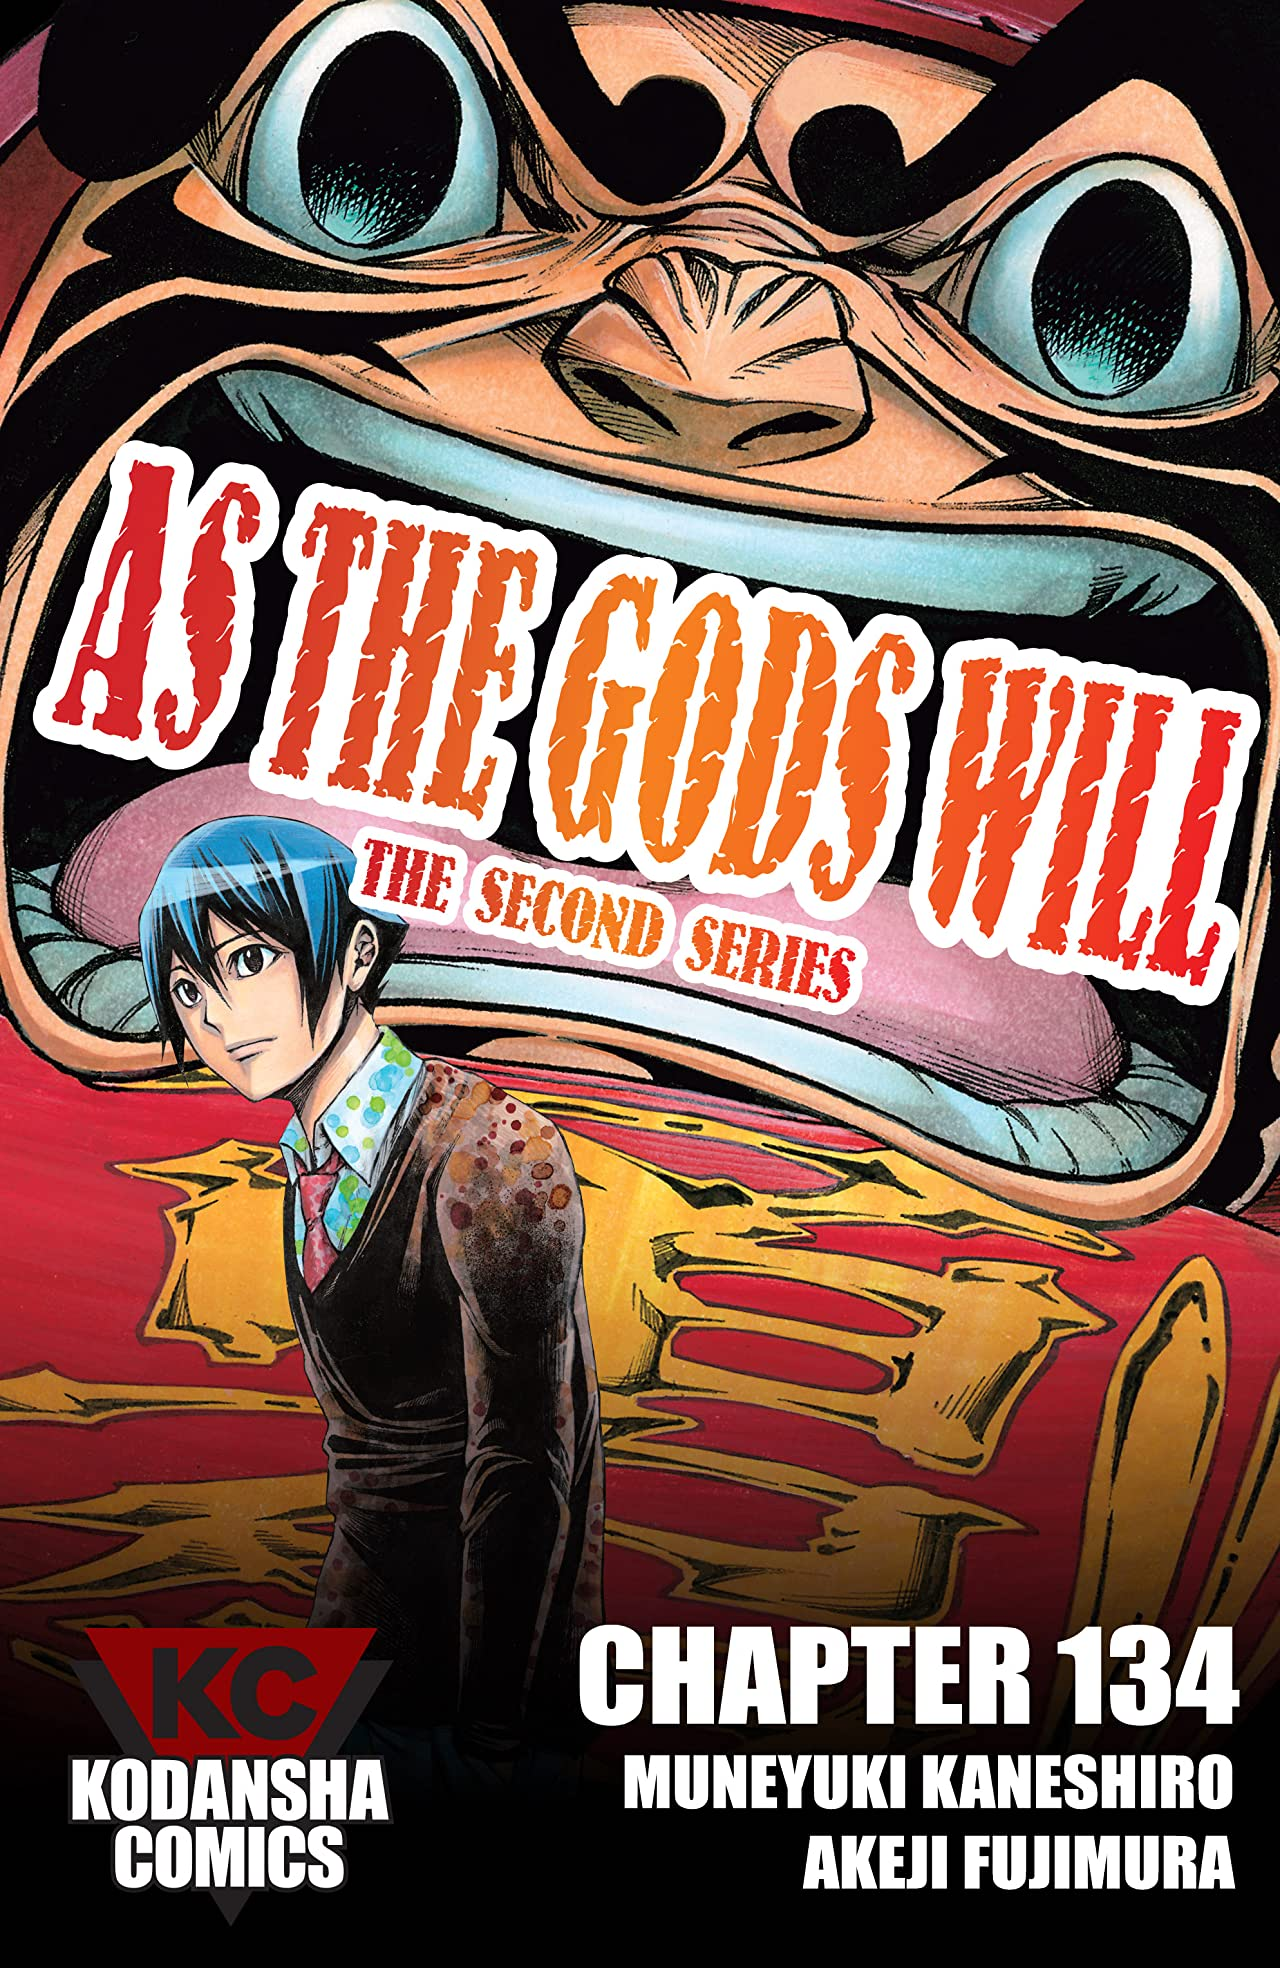 As The Gods Will: The Second Series #134